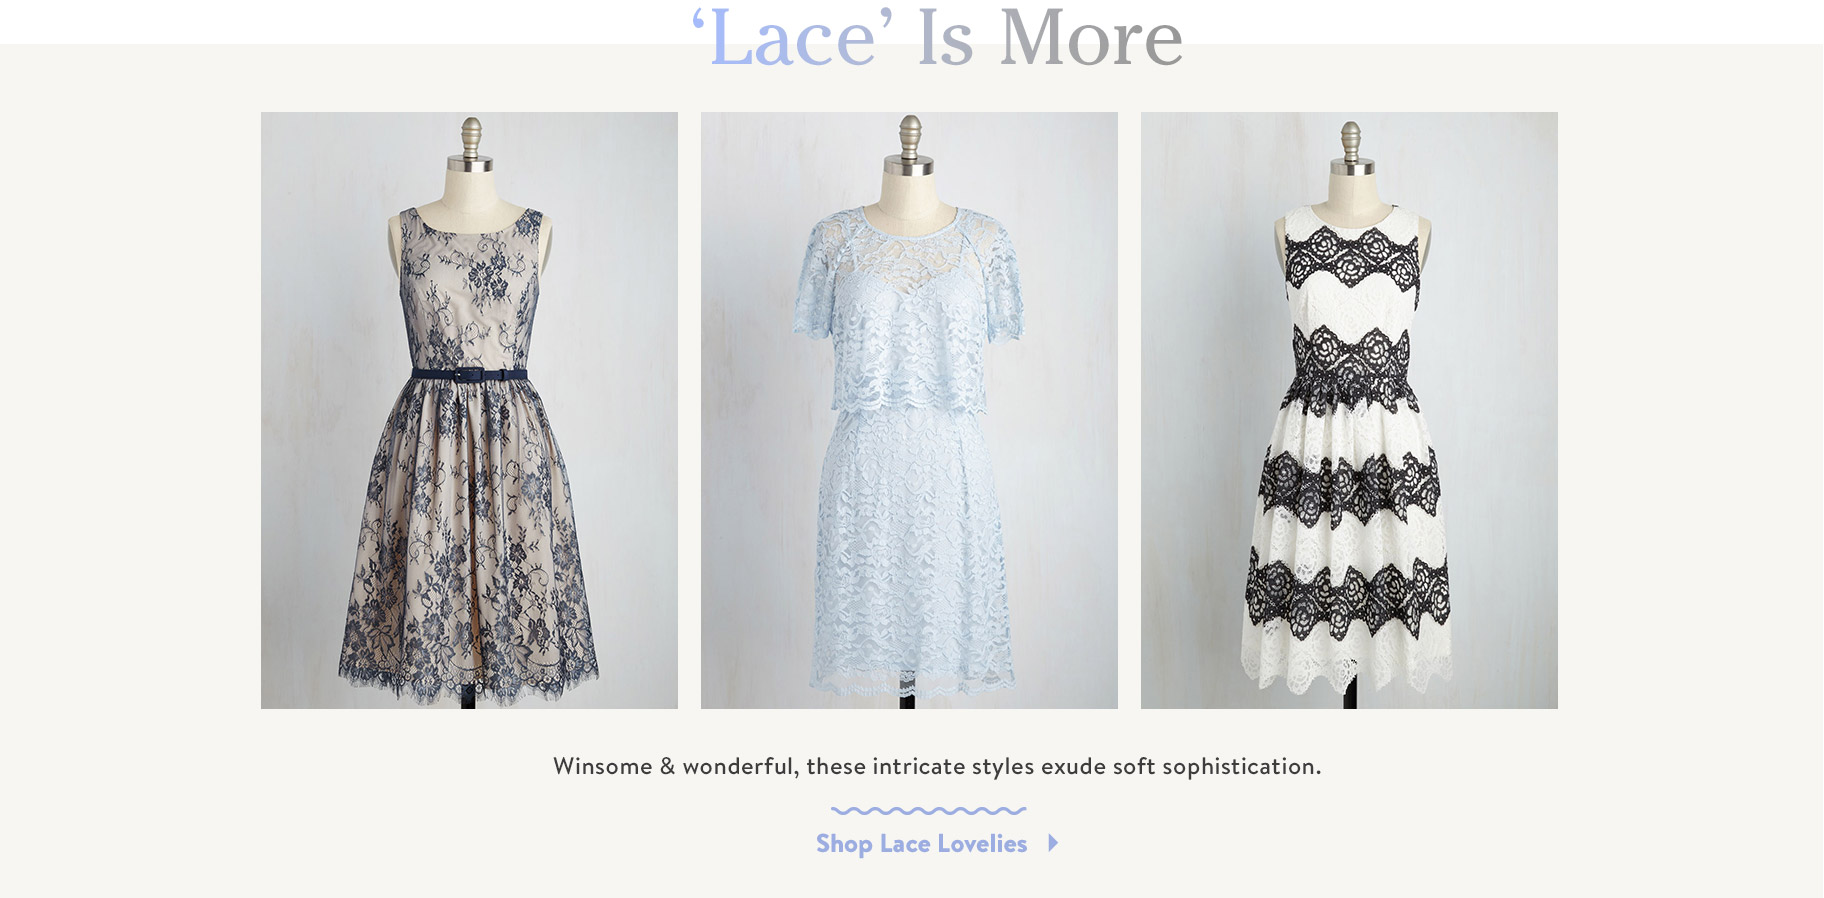 'Lace' is More. Winsome & wonderful, these intricate styles exude soft sophistication. Shop Lace Lovelies.